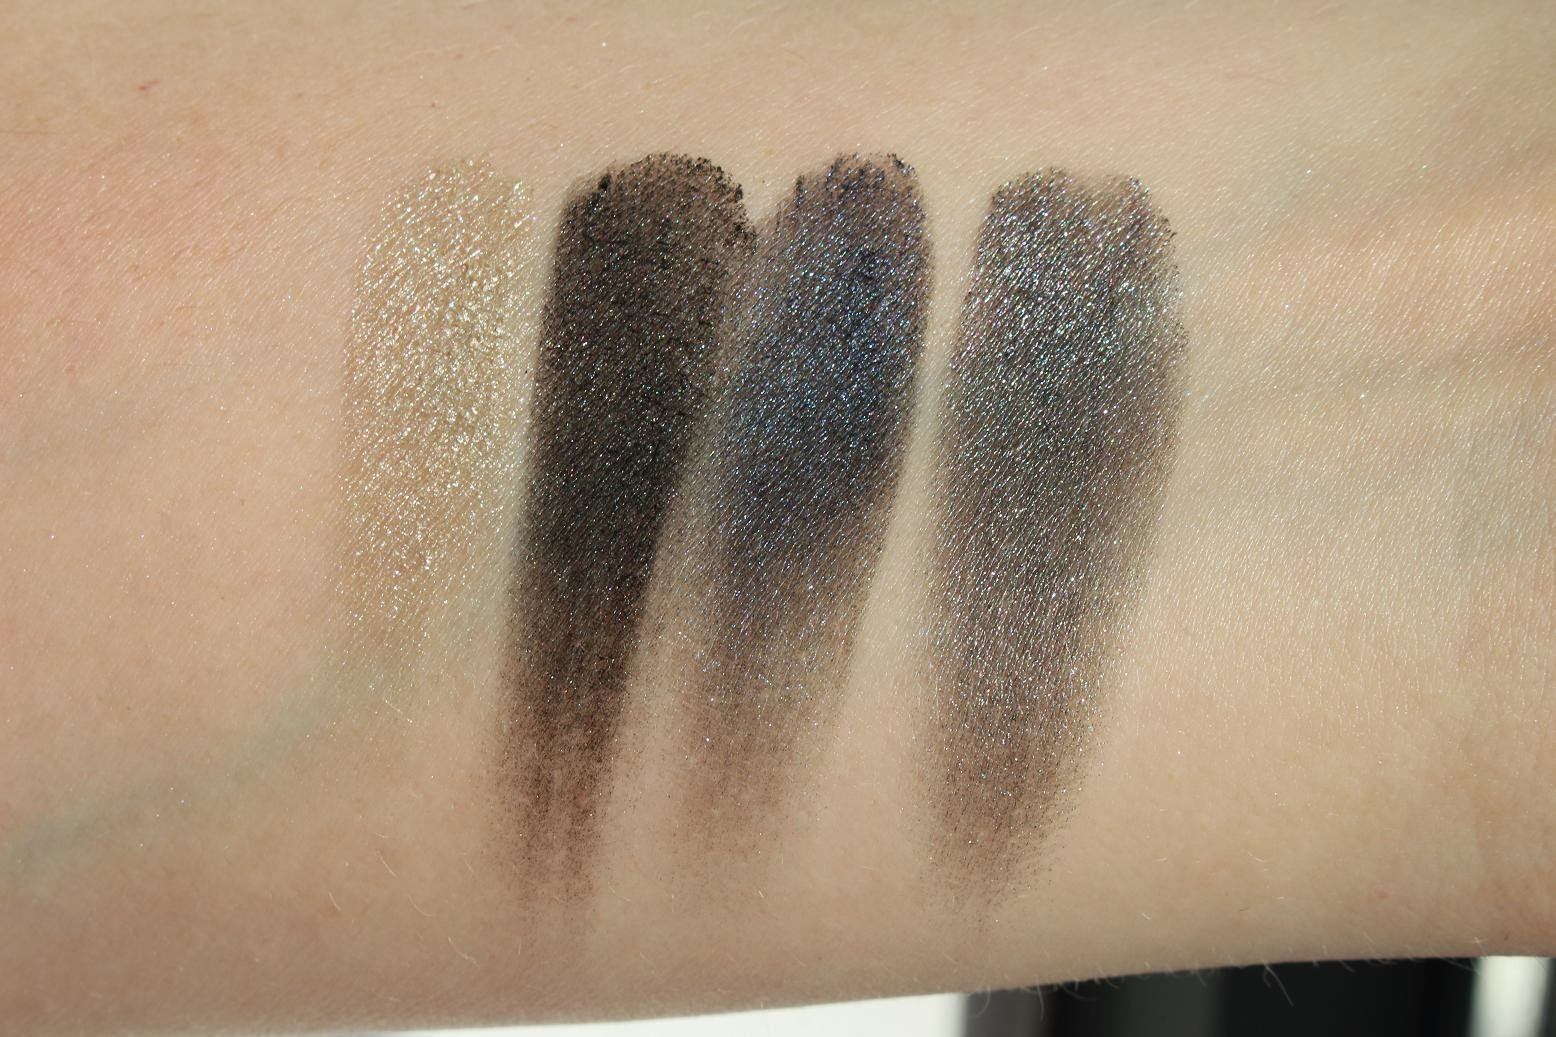 Sisley Phyto 4 Ombres in 2 Mystery